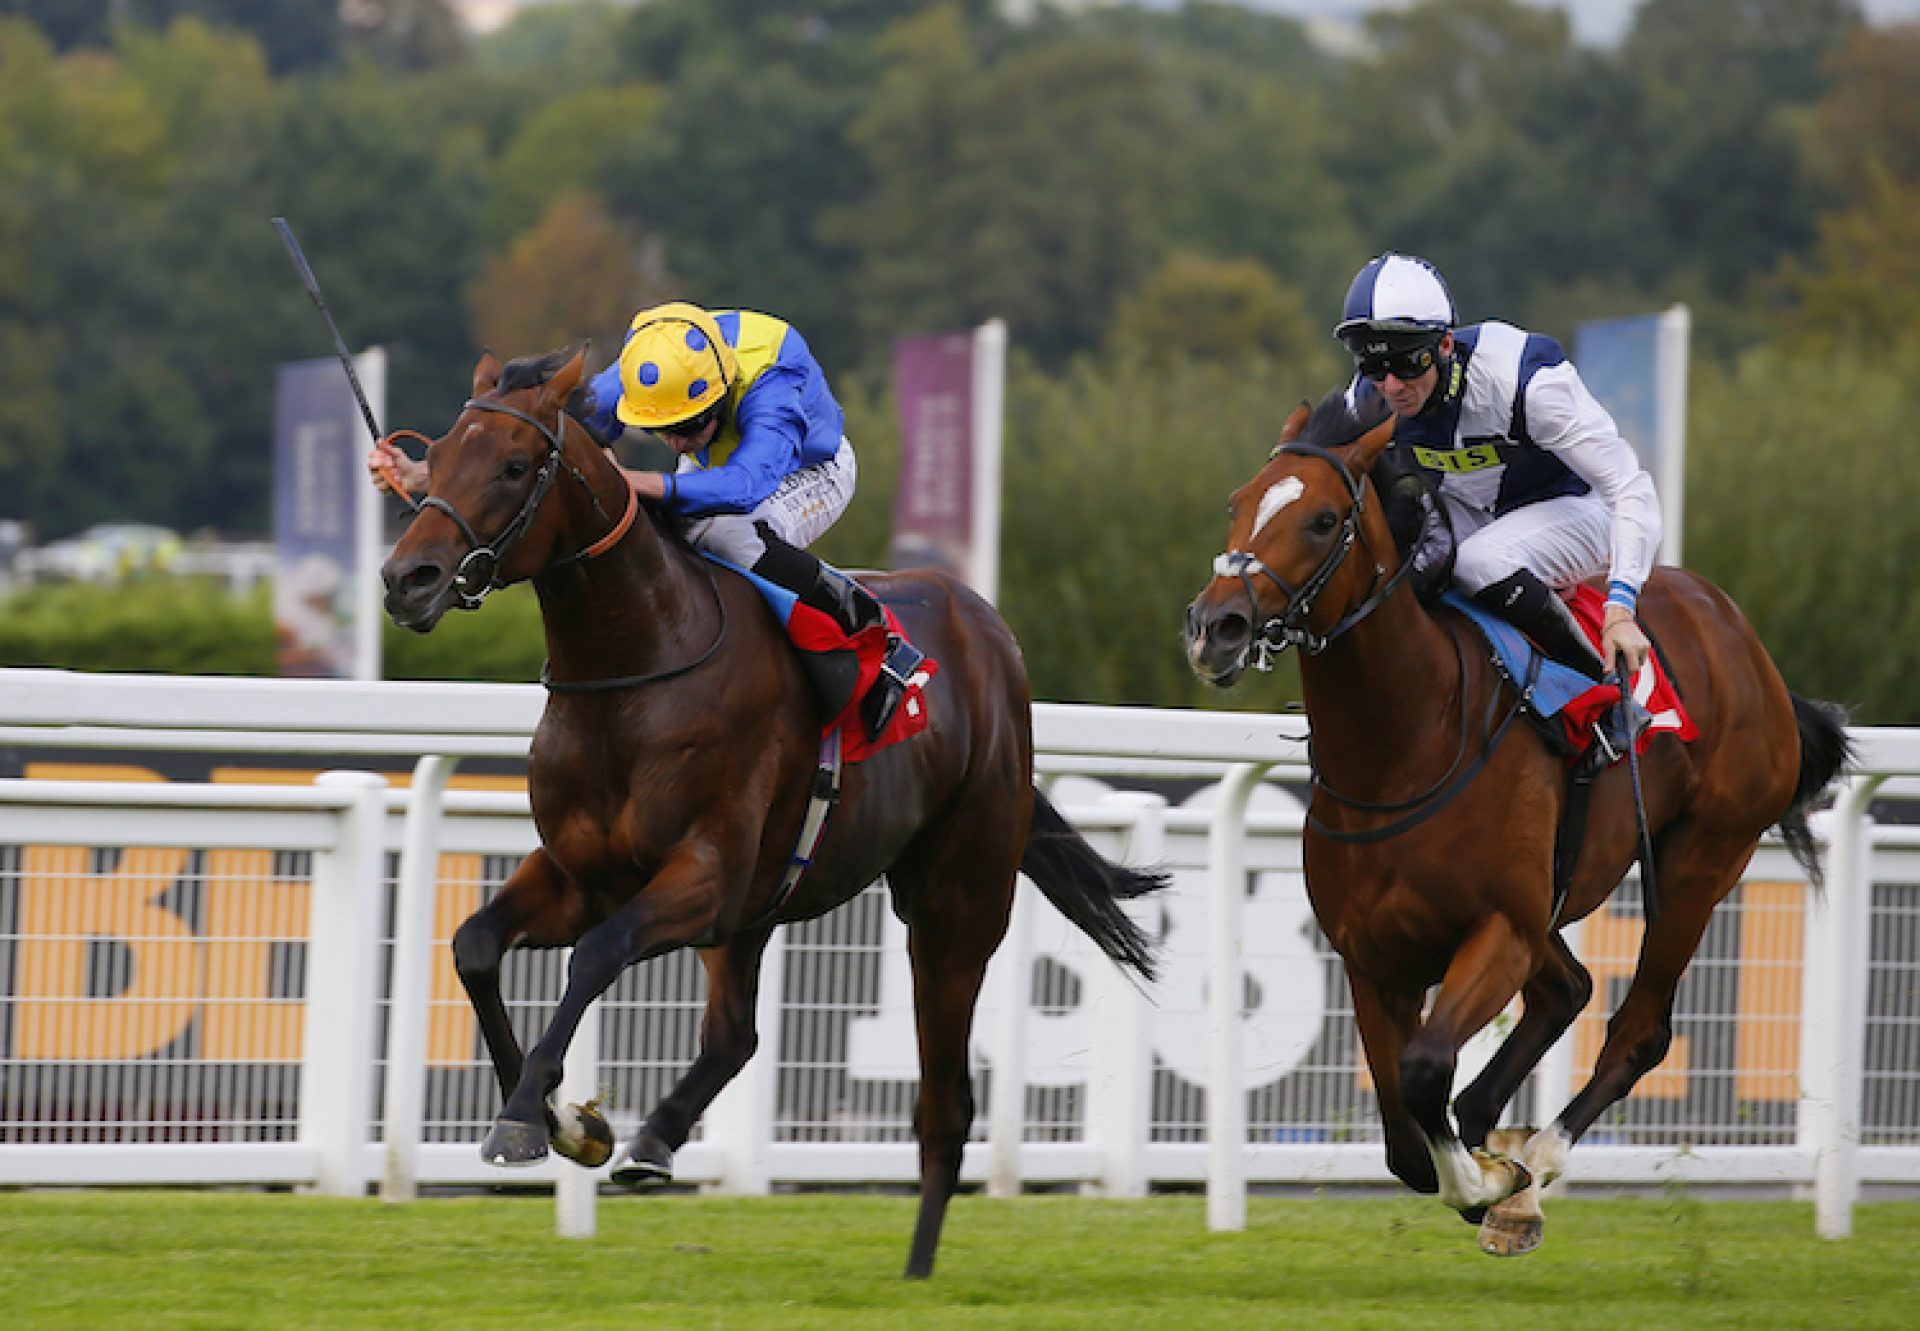 Almania (Australia) winning a maiden at Sandown